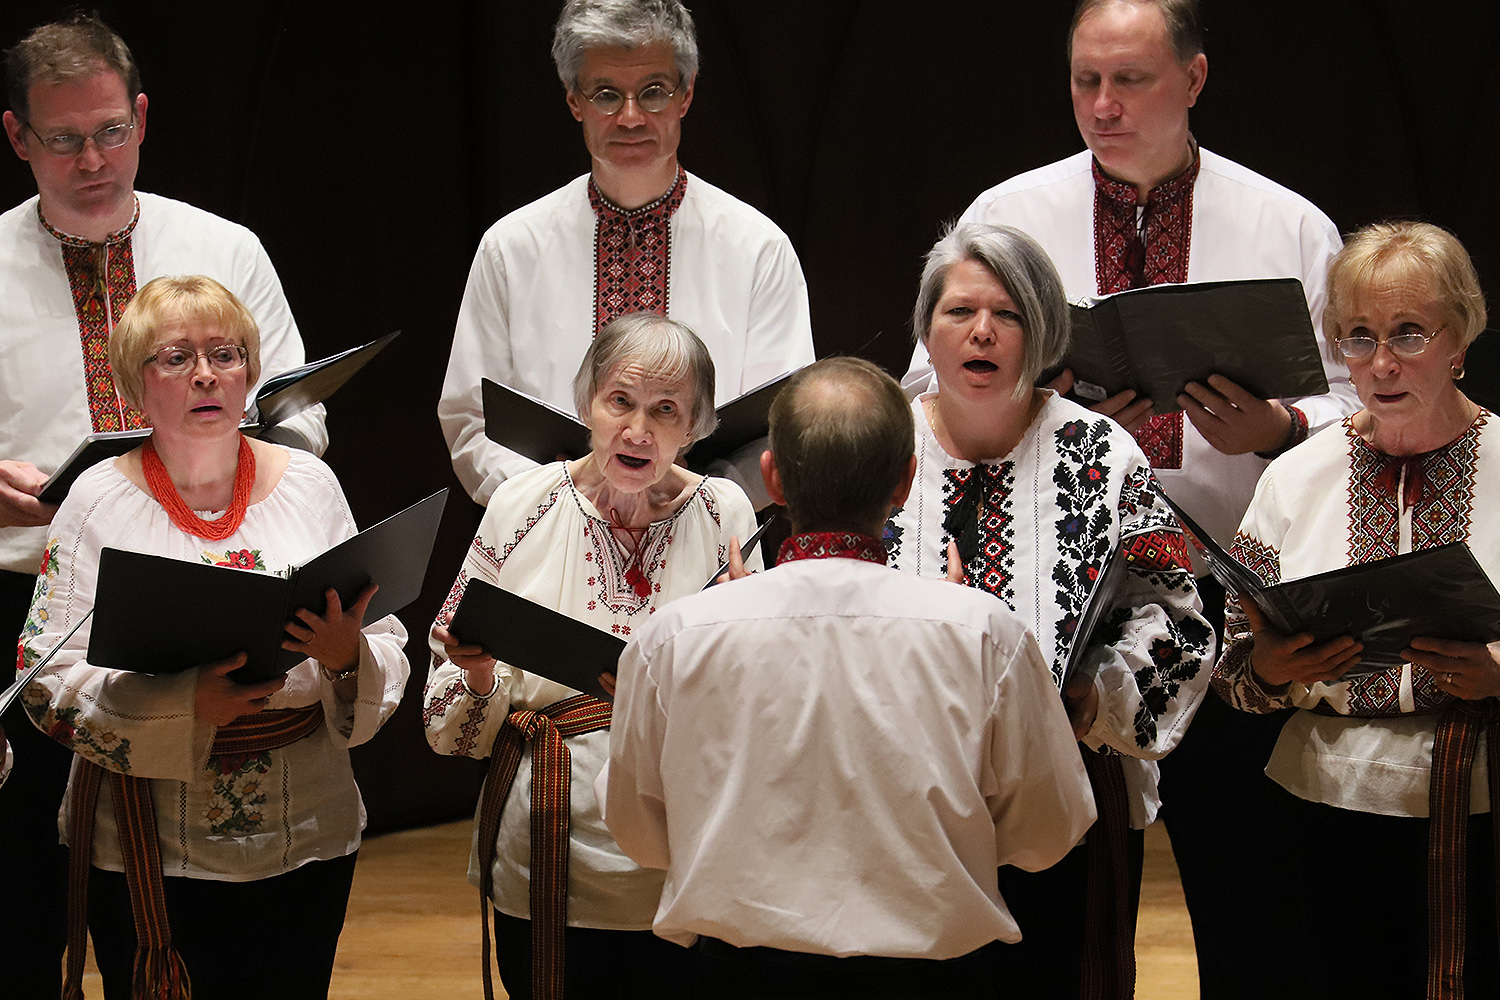 "The Yevshan Ukrainian Vocal Ensemble of Hartford, a Connecticut-based Ukrainian community chorus, performed an original composition by its conductor, Alexander Kuzma, based on poem ""On Bald Mountain"" by Vasyl Stus. Stus, a human rights activist and political prisoner from the Donetsk Region of Ukraine, died in the Soviet Gulag in 1985. Donetsk State University was renamed in honor of Stus in the late 2000s, but since the Russian invasion of Donetsk in 2014, Stus's name has been removed from the campus."